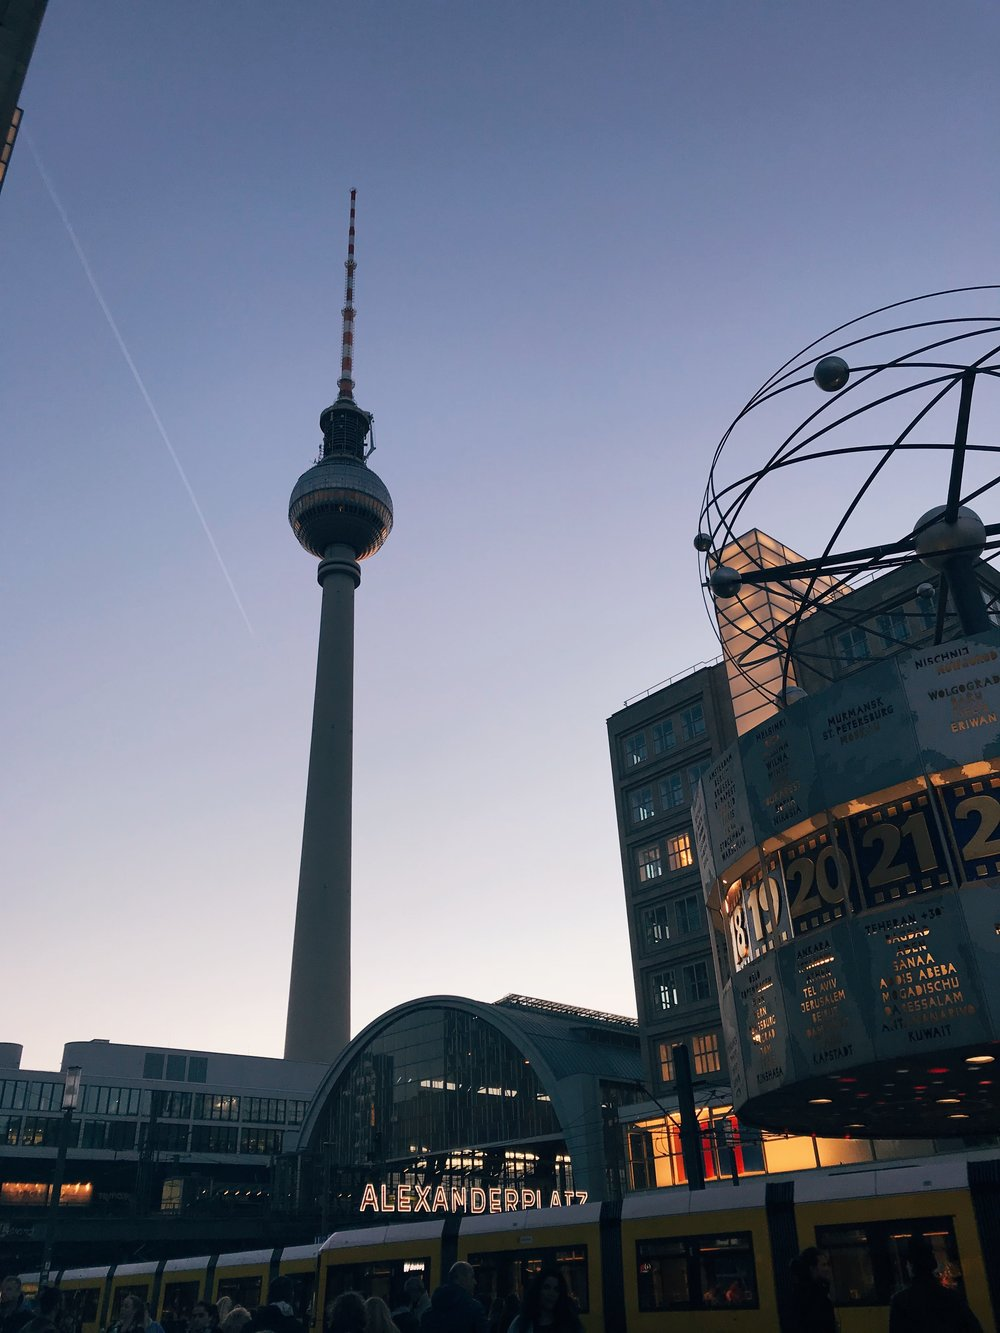 Alexanderplatz area (TV Tower)